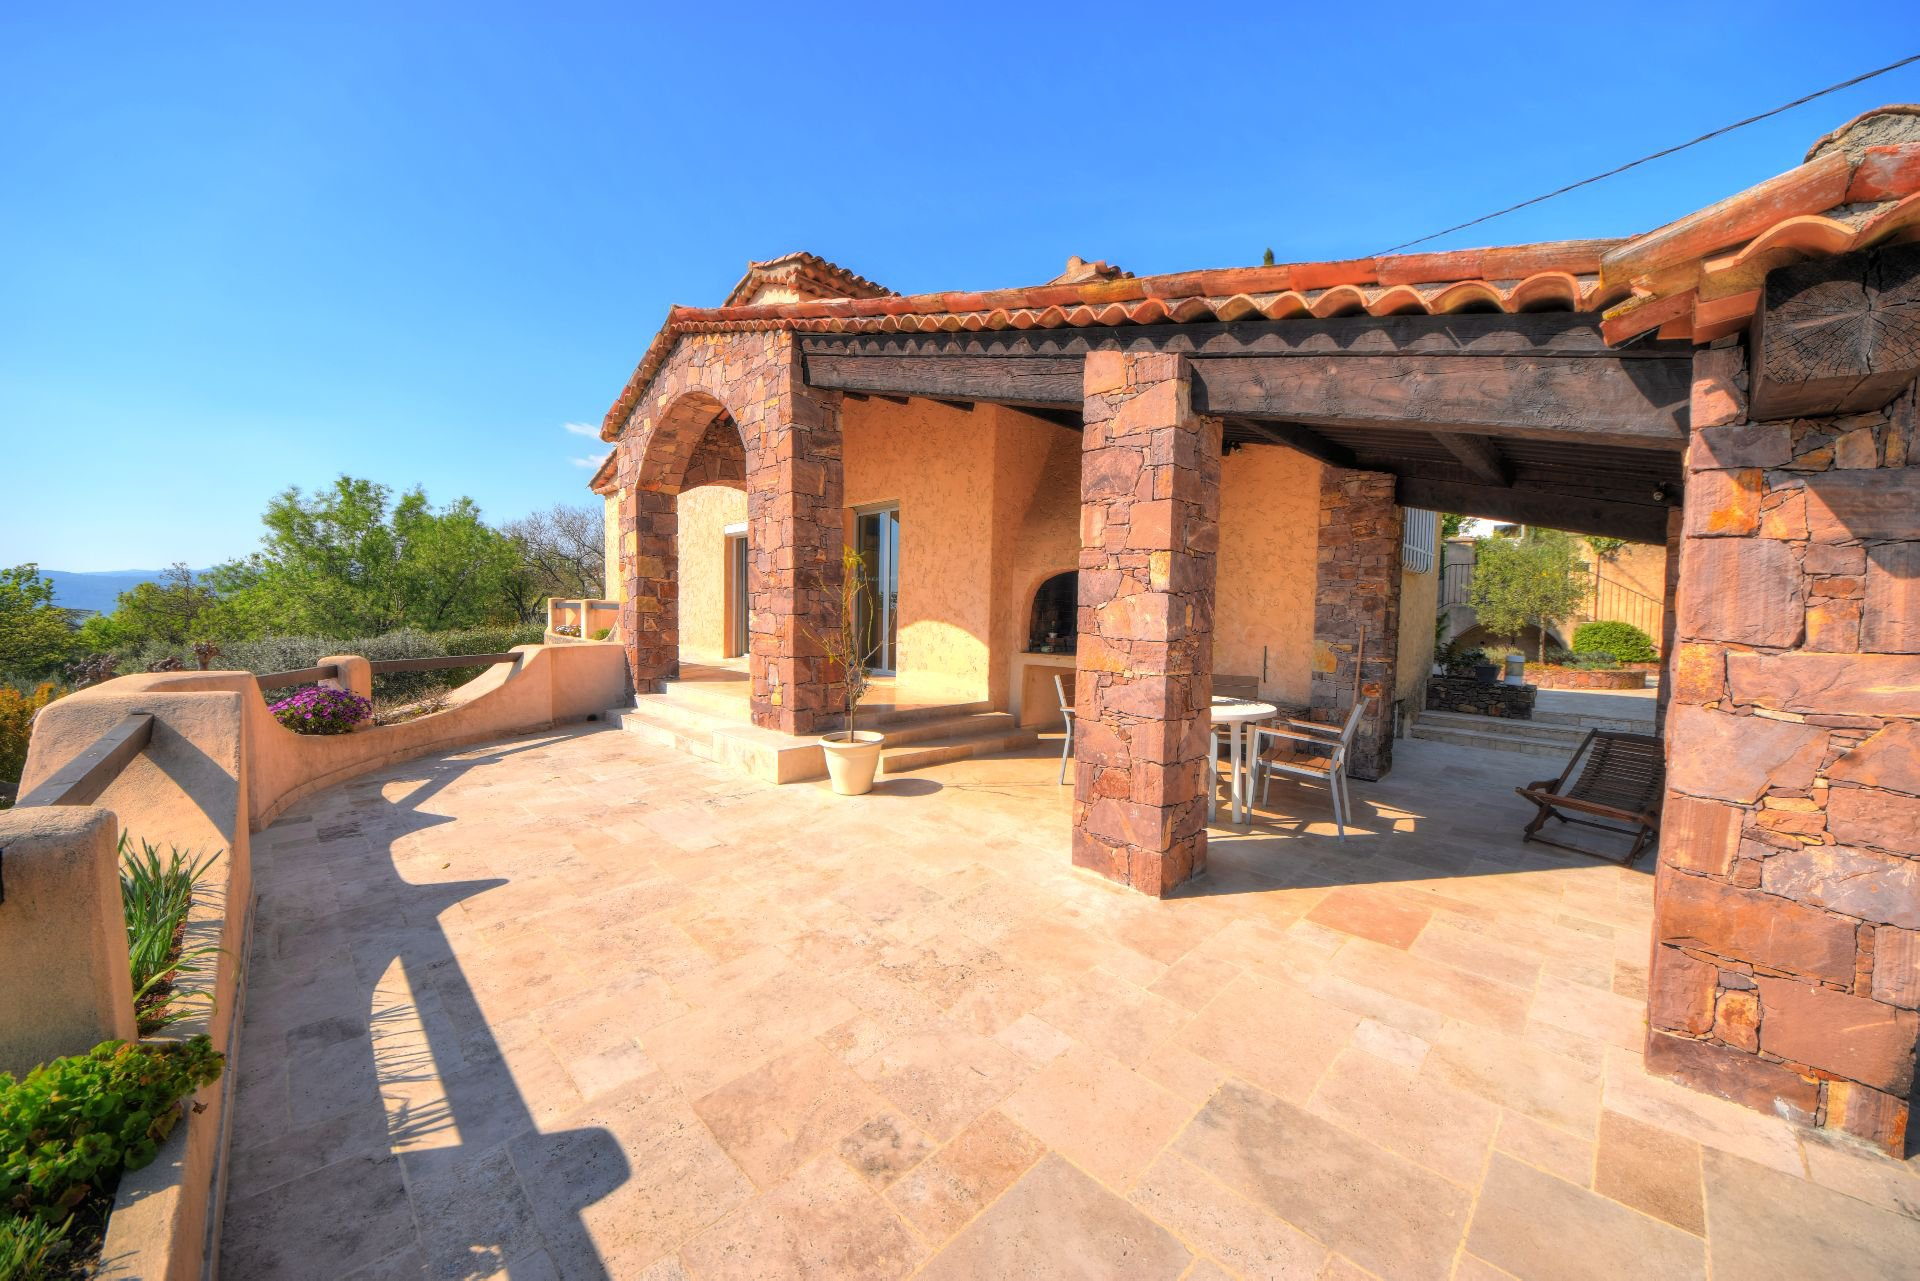 Terrace of the villa 328 m² panoramic view, Draguignan, Var, Provence